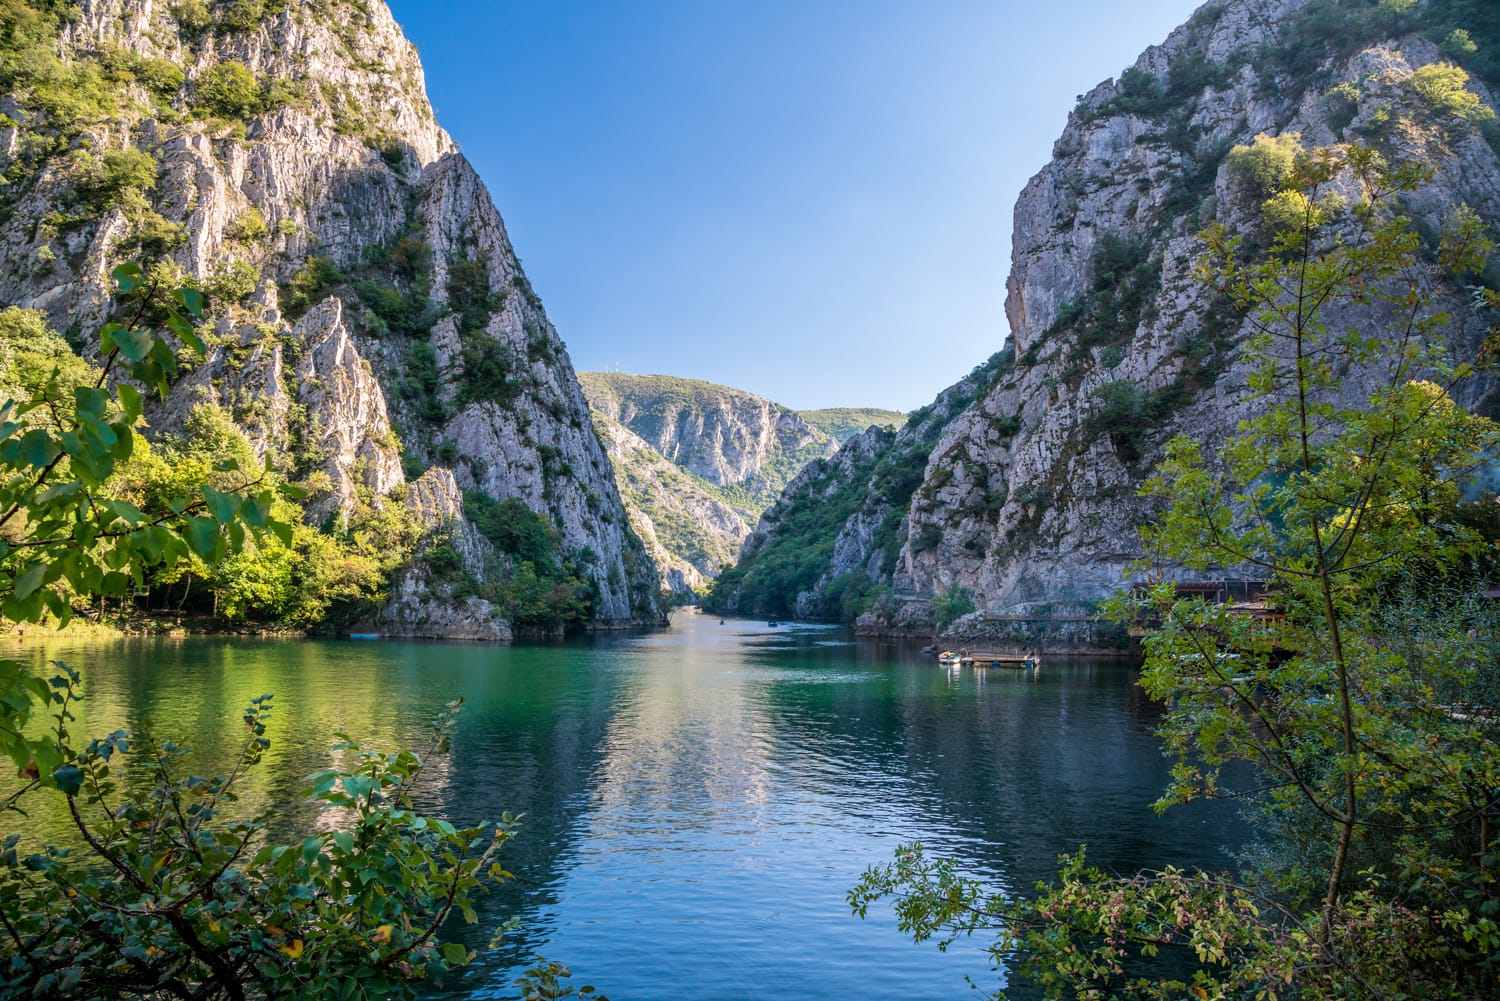 Matka Canyon near Skopje, Macedonia